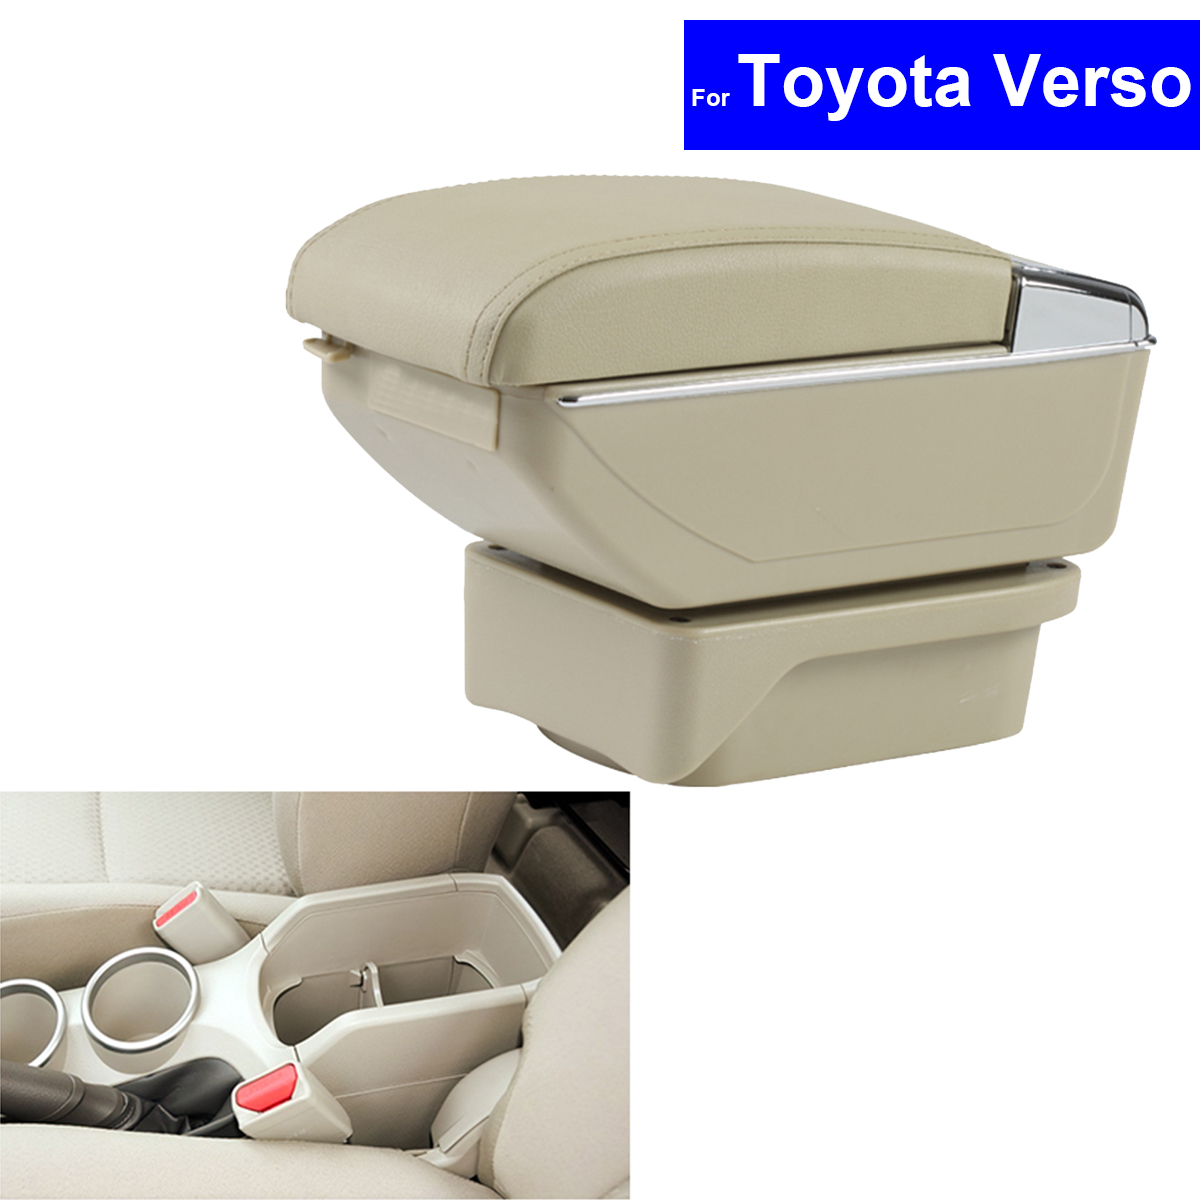 Leather Center Console Armrest Storage Box for Toyota Verso 2011 2012 2013 2014 2015 Armrests Free Shipping for skoda octavia 2009 2010 2011 2012 2013 2014 2015 2016 armrest with usb leather car center console armrests storage box